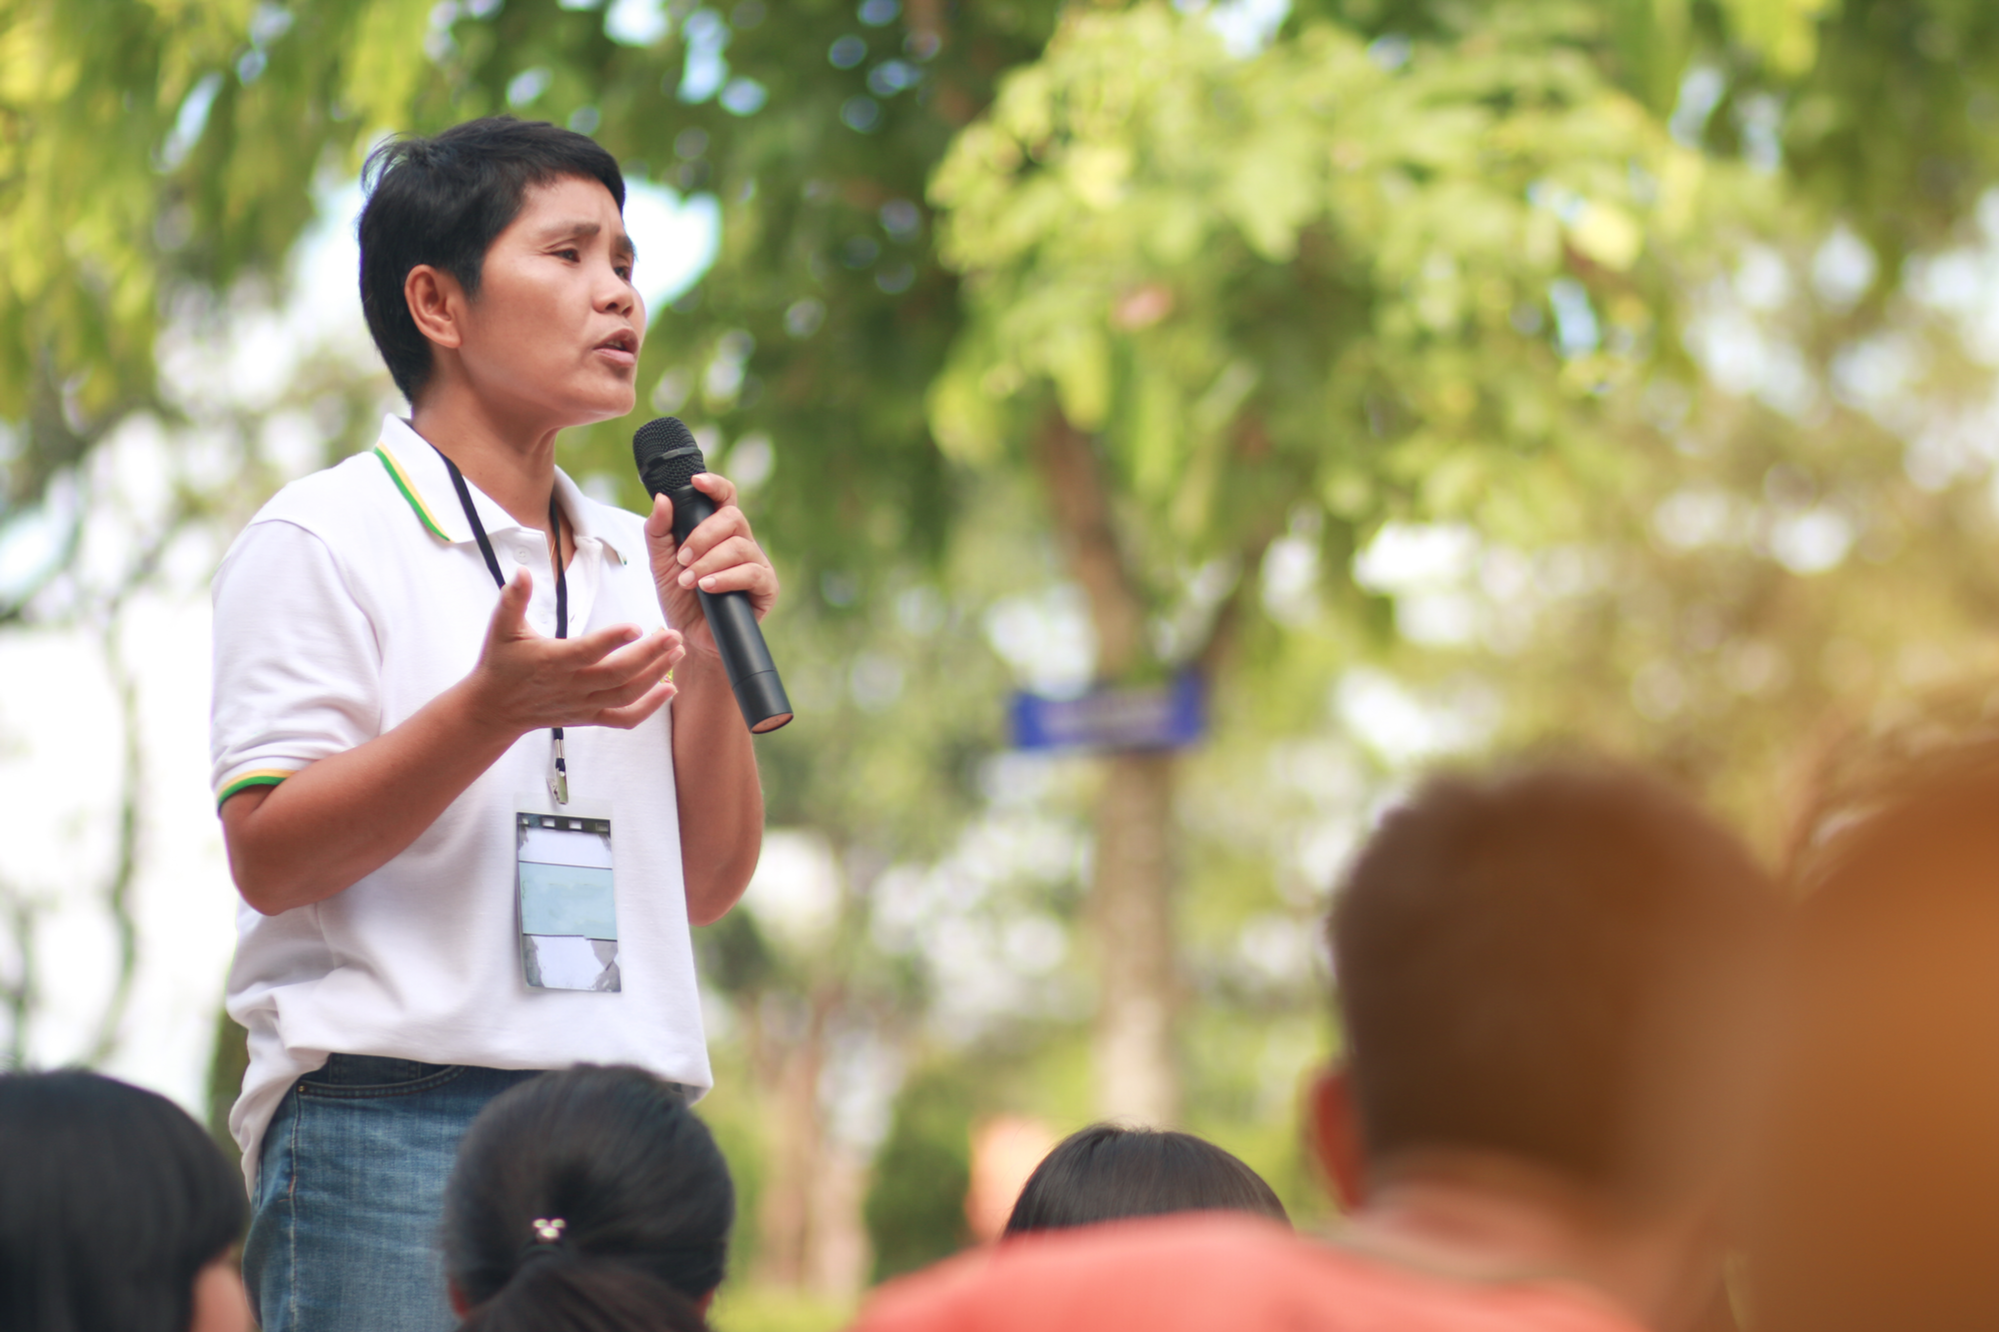 stock-photo-blurred-of-asian-thai-teachers-holding-a-microphone-teaching-students-and-speech-outside-the-531721099.jpg